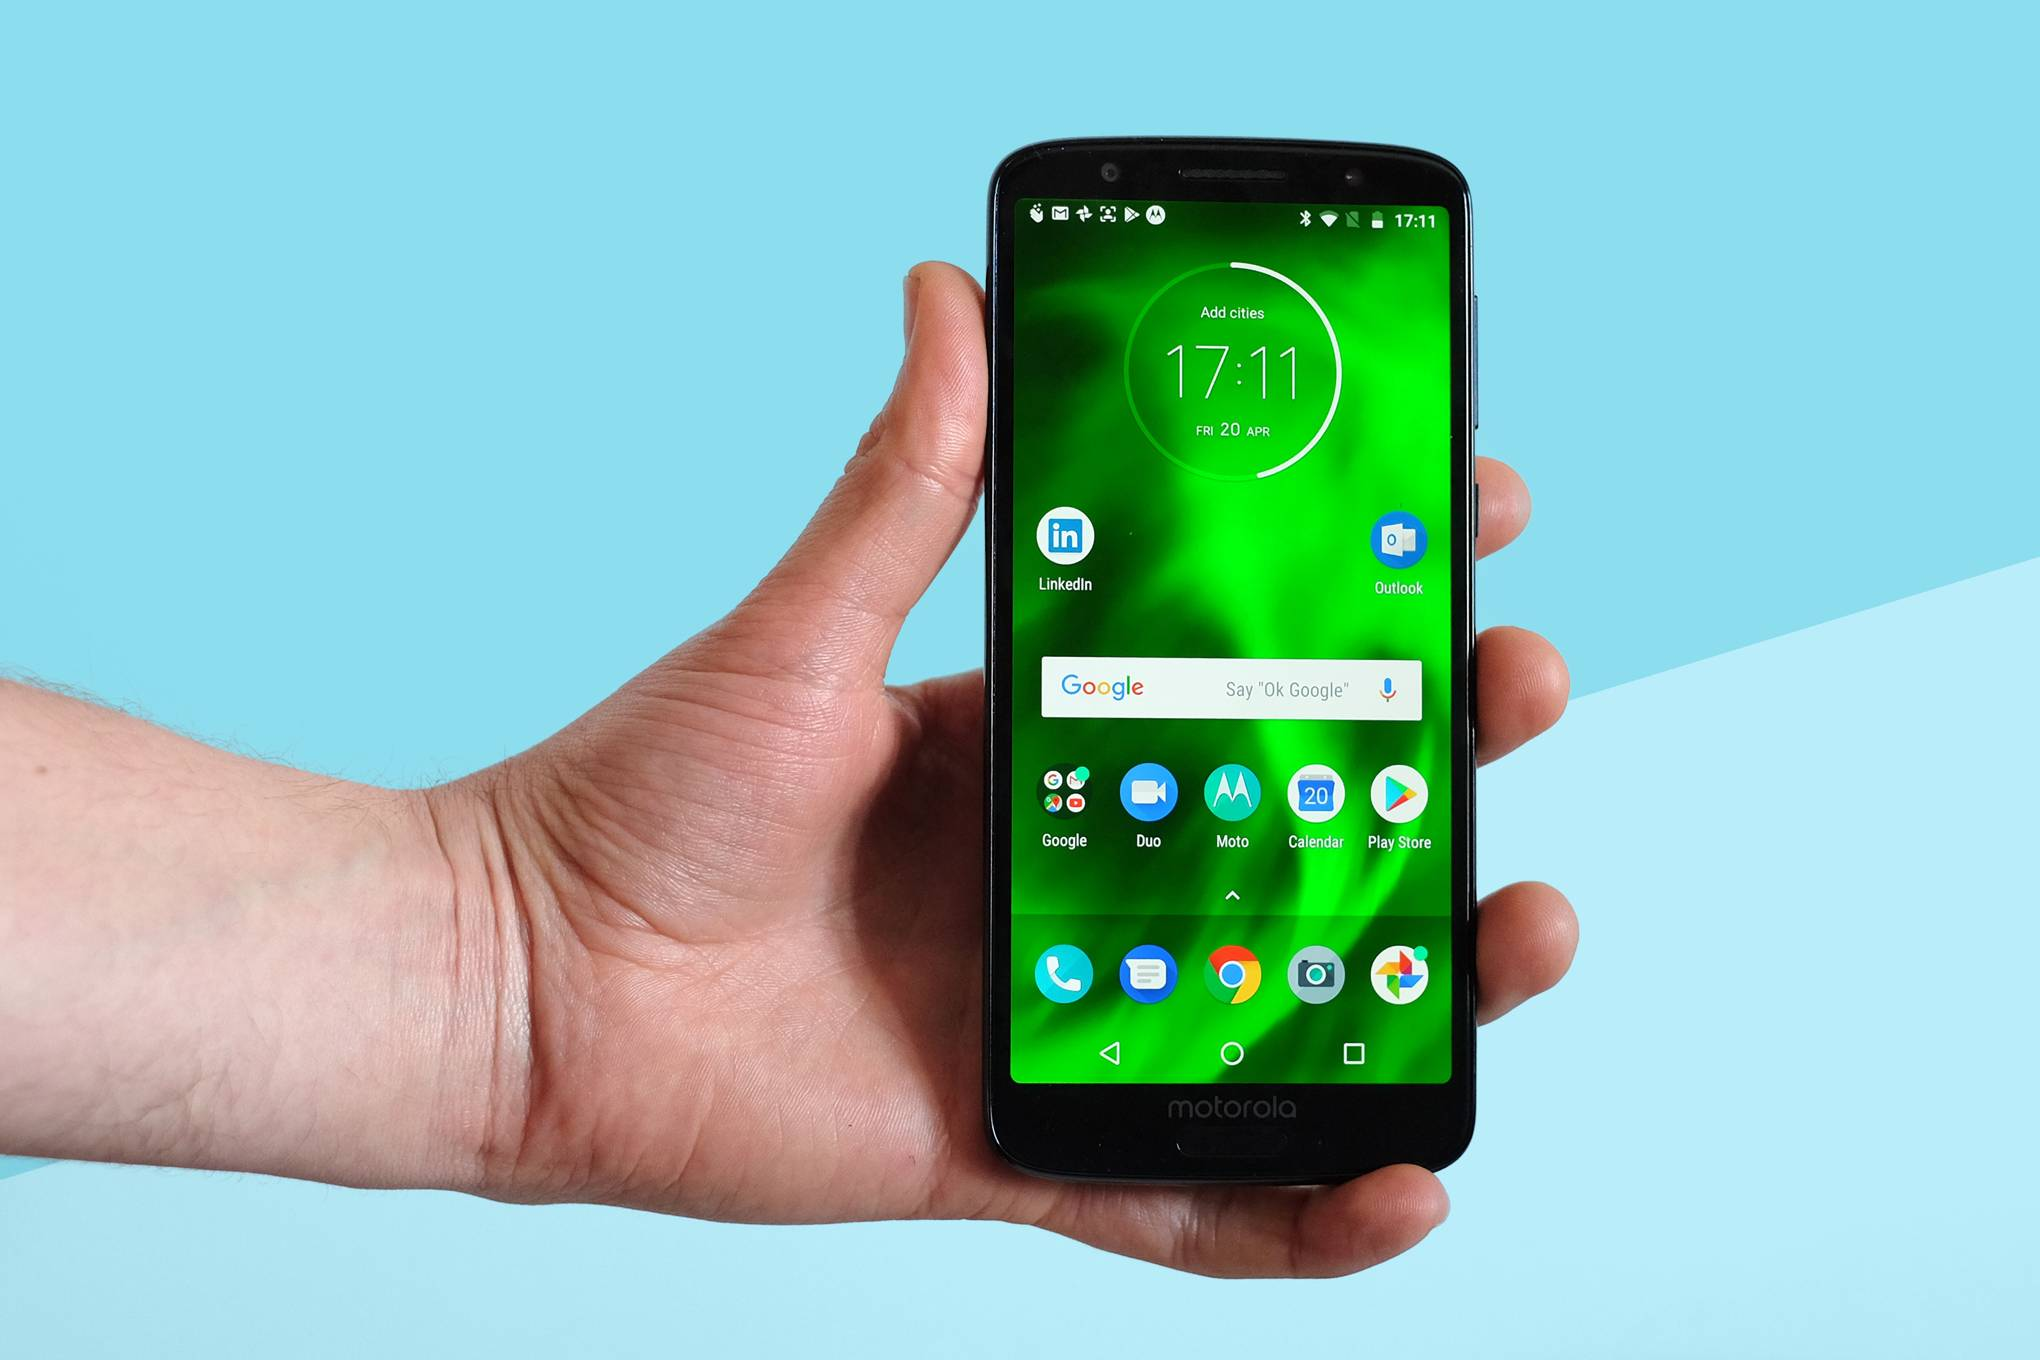 The Moto G6 exposes the identity crisis plaguing Android's